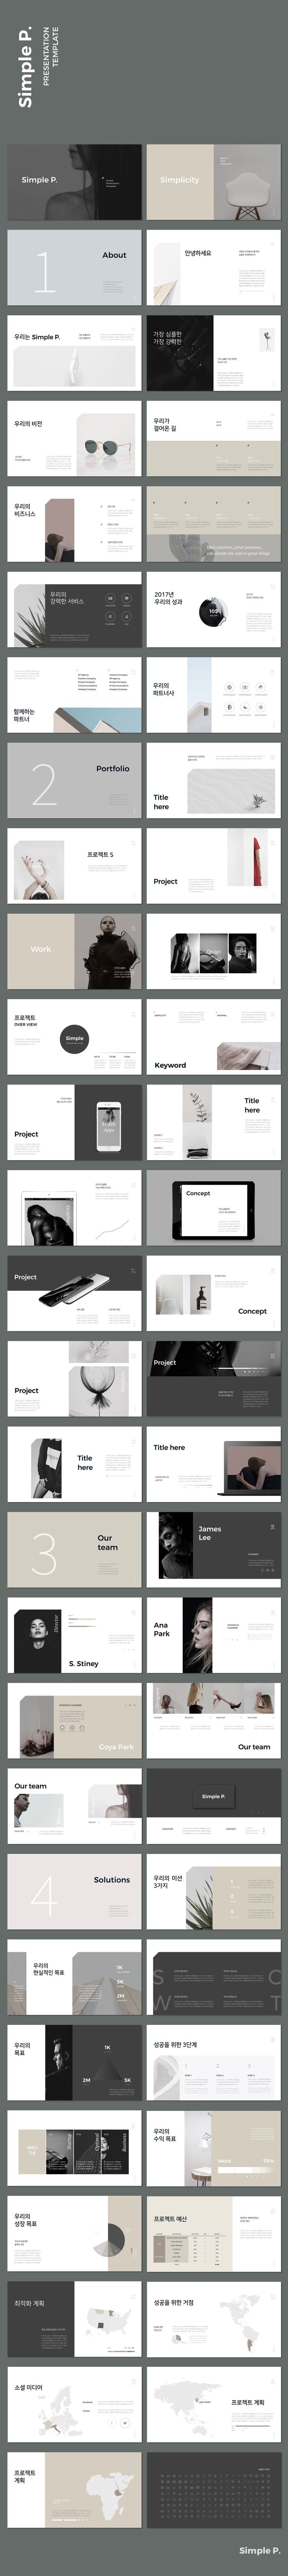 회사소개 포트폴리오 / 심플 & 미니멀 레이아웃 템플릿 Simple & Minimal Presentation Template #presentation #ppt #template #portfolio #marketing